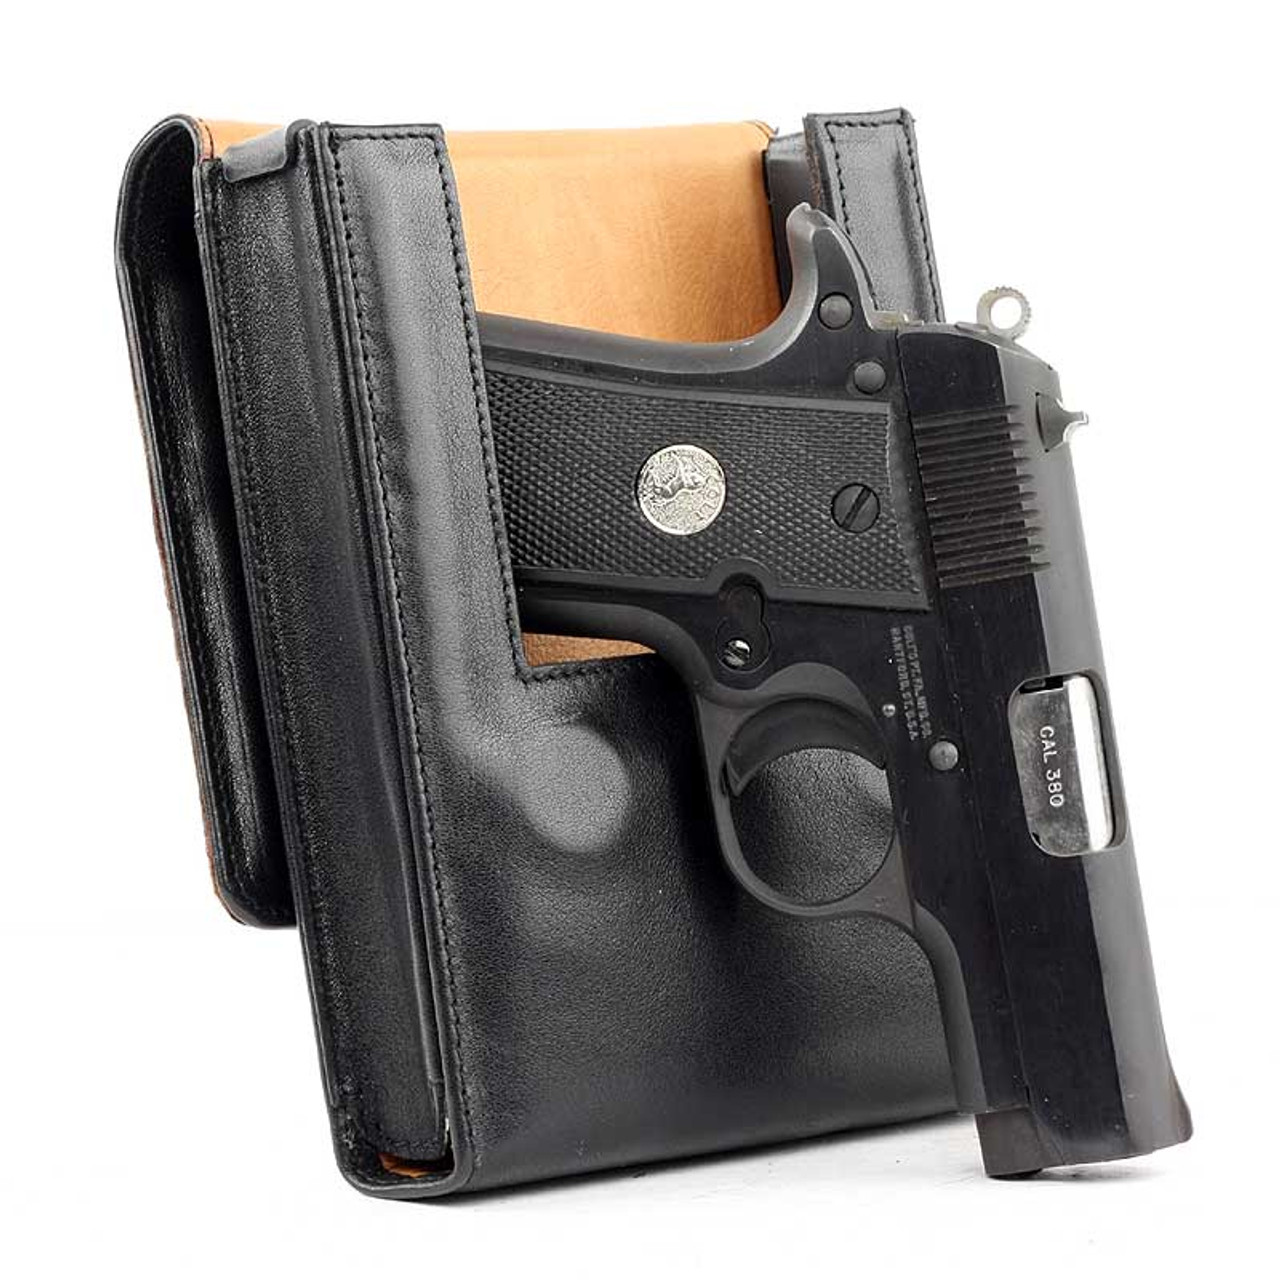 Colt Mustang Pocketlite Concealed Carry Holster (Belt Loop)